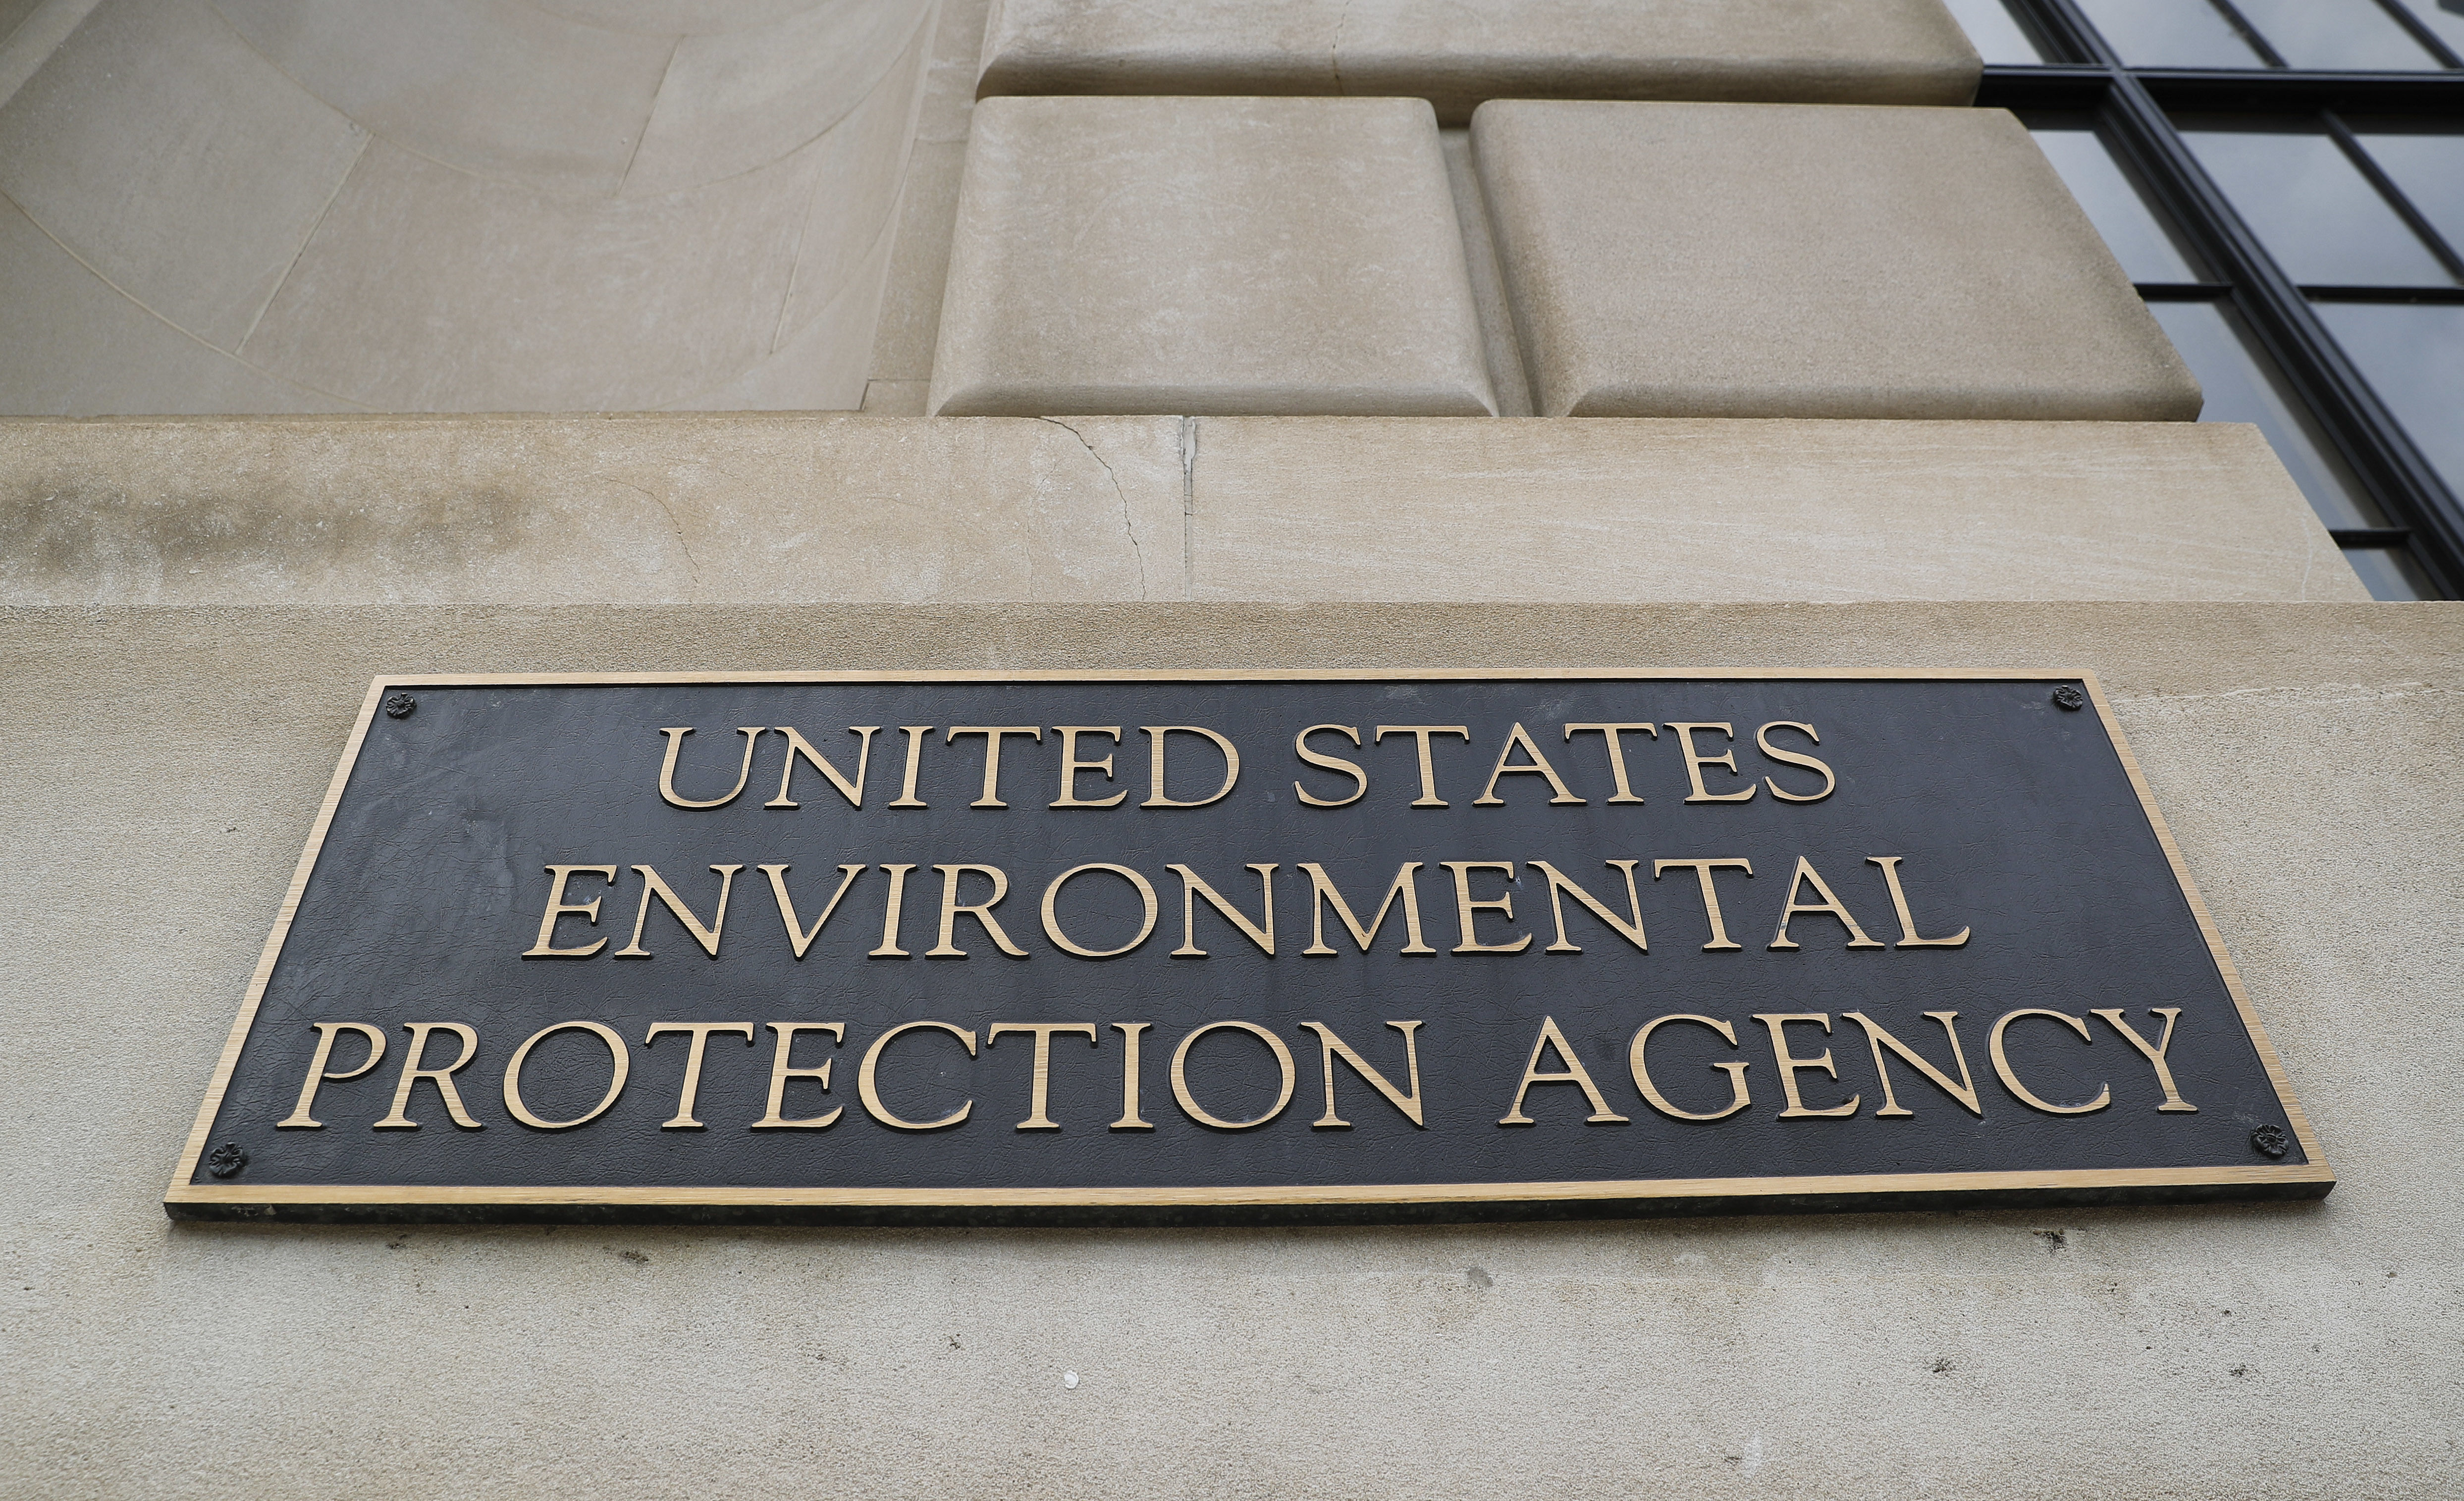 Epa To Connect Loudoun Homes Contaminated By Landfill To Public Water Wtop